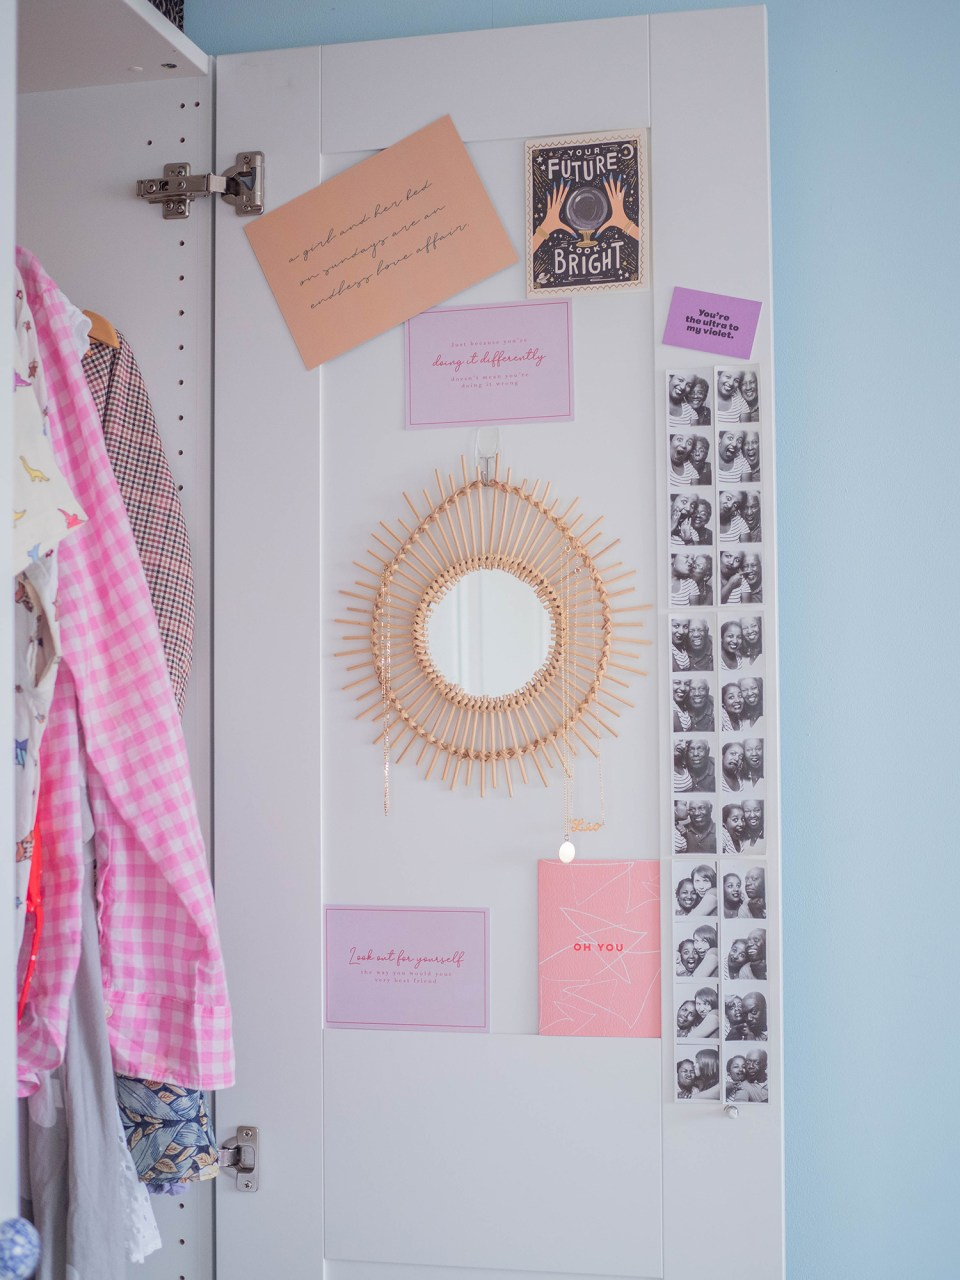 interior of cupboard with mirror and photographs